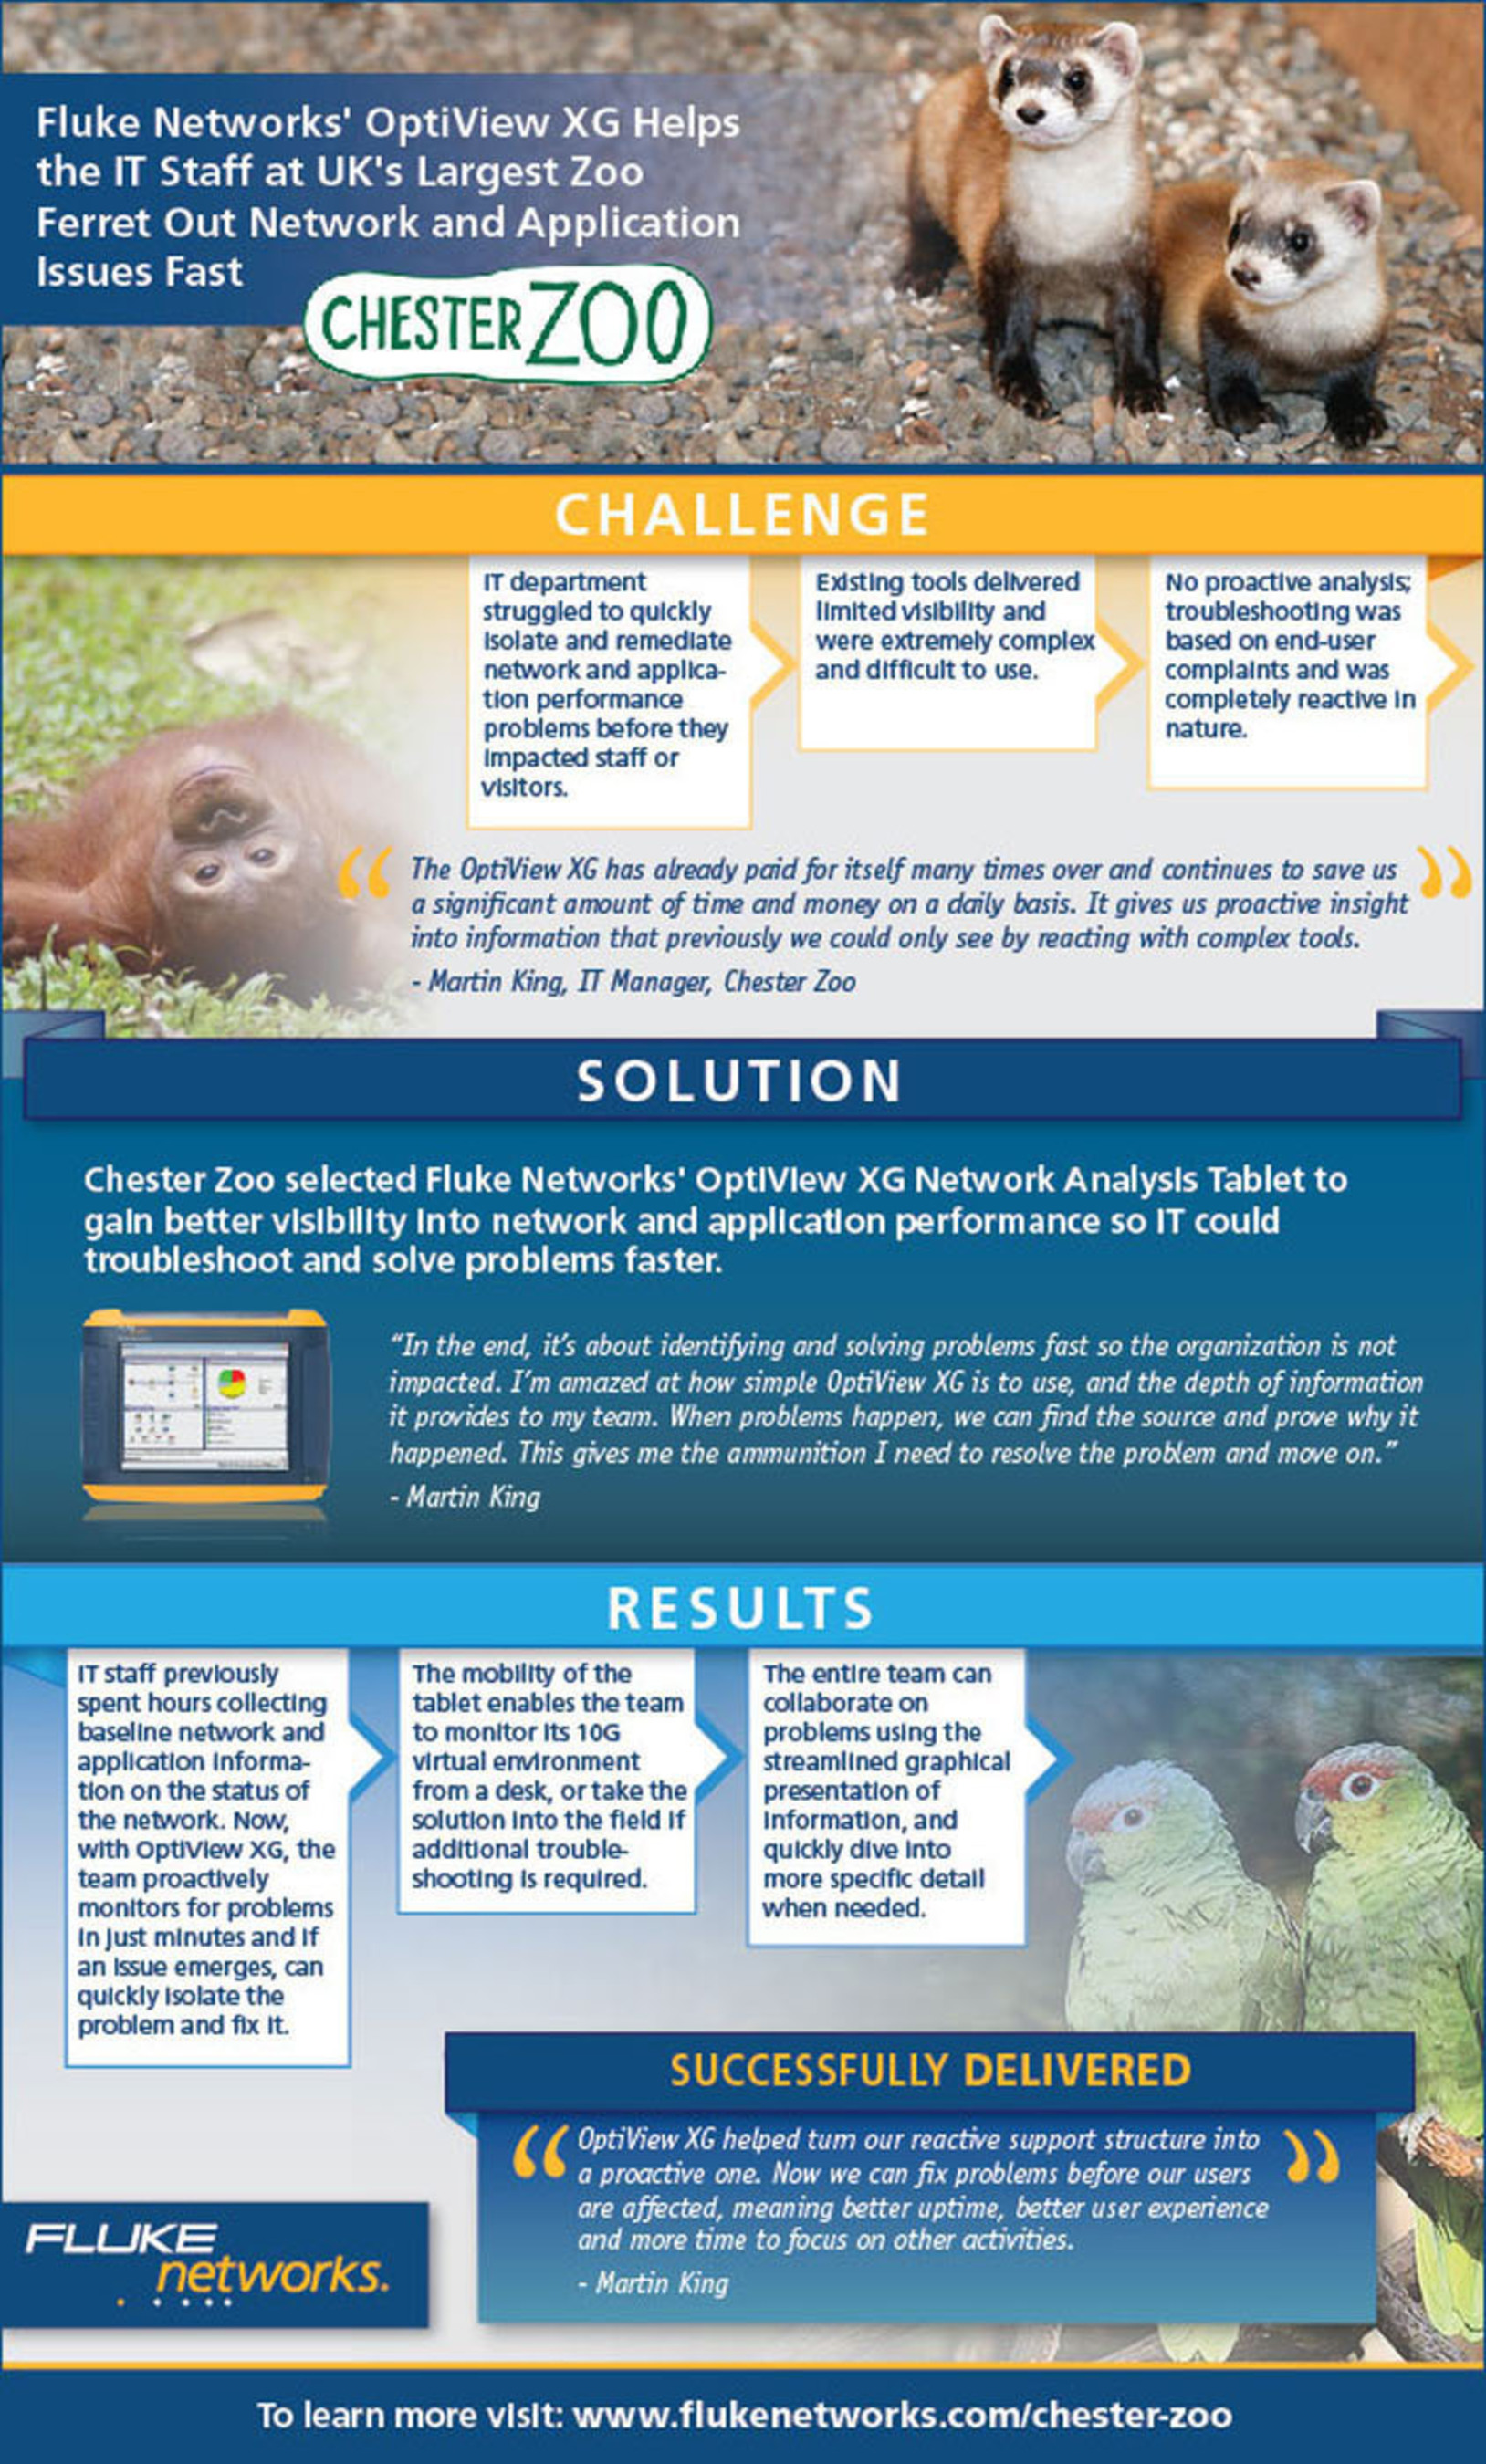 UK's Largest Zoo Chooses Fluke Networks' OptiView XG to Help Identify and Fix Network and Application ...